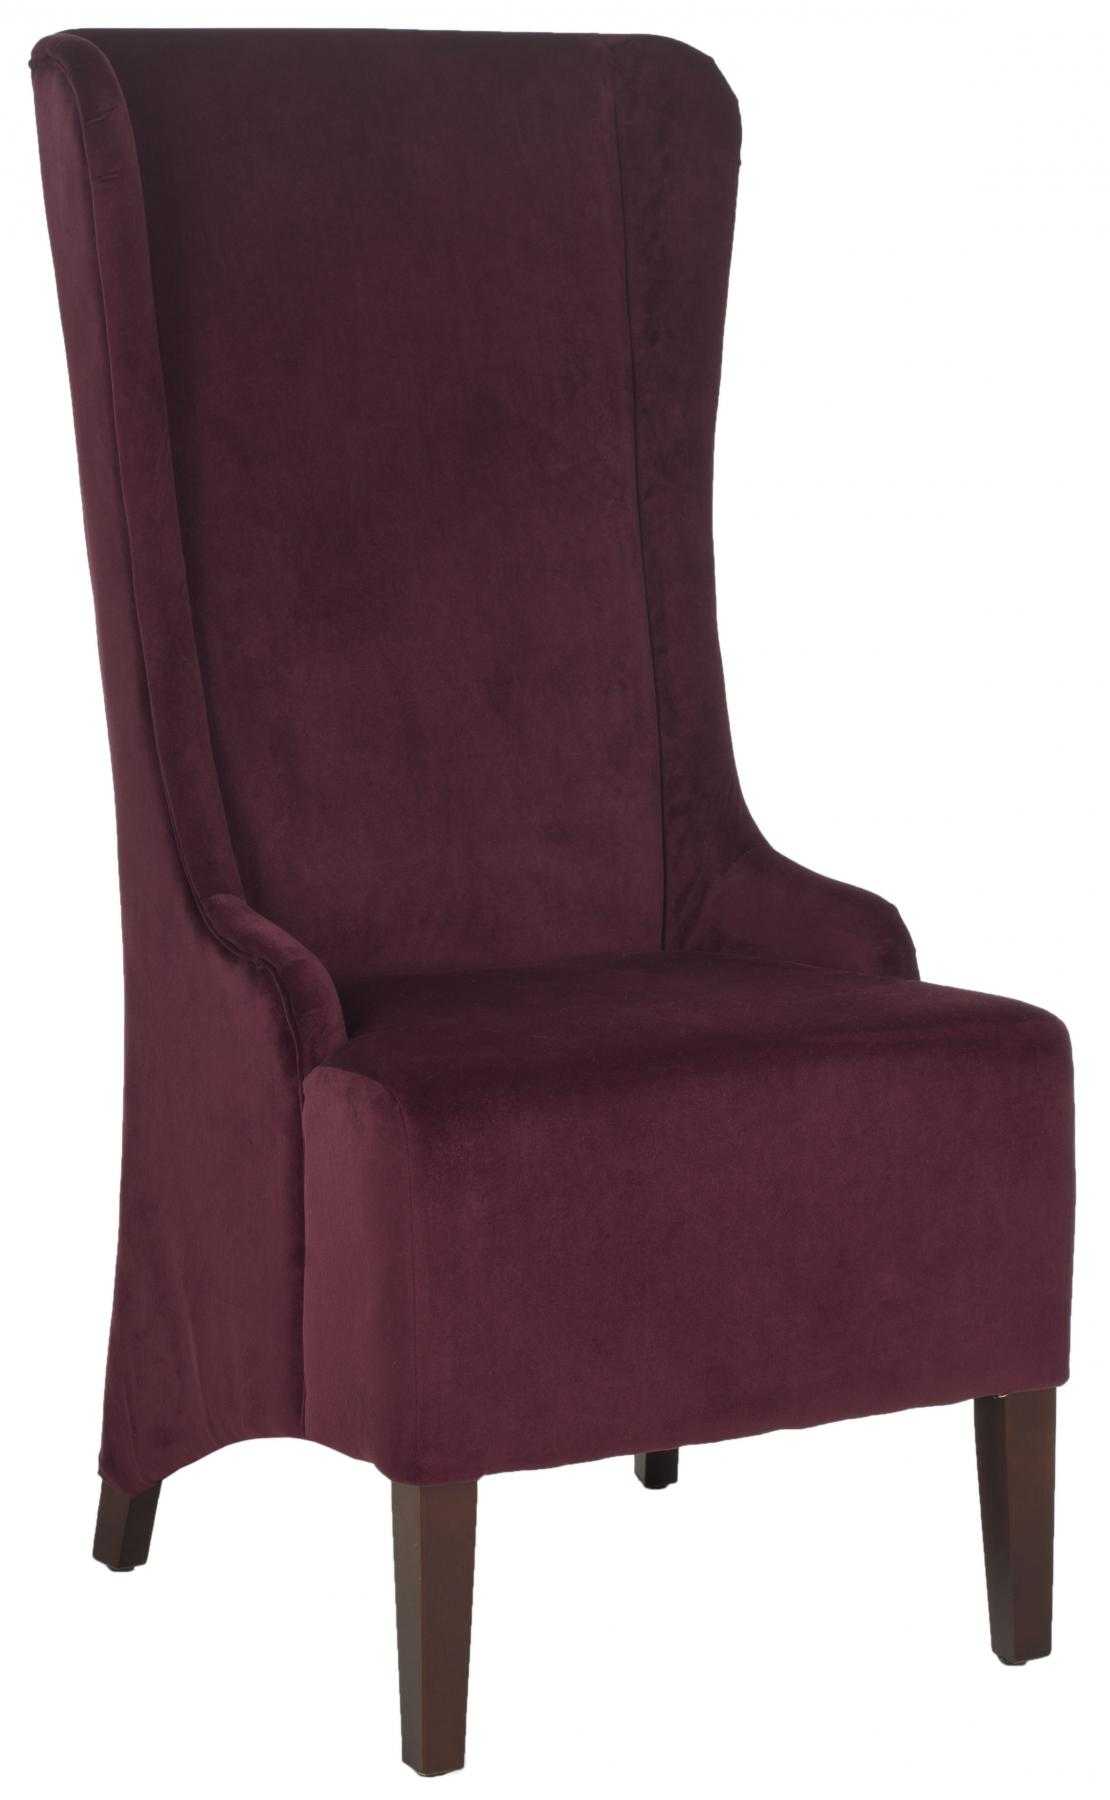 ... Safavieh   MCR4501K BACALL CHAIR   BORDEAUX